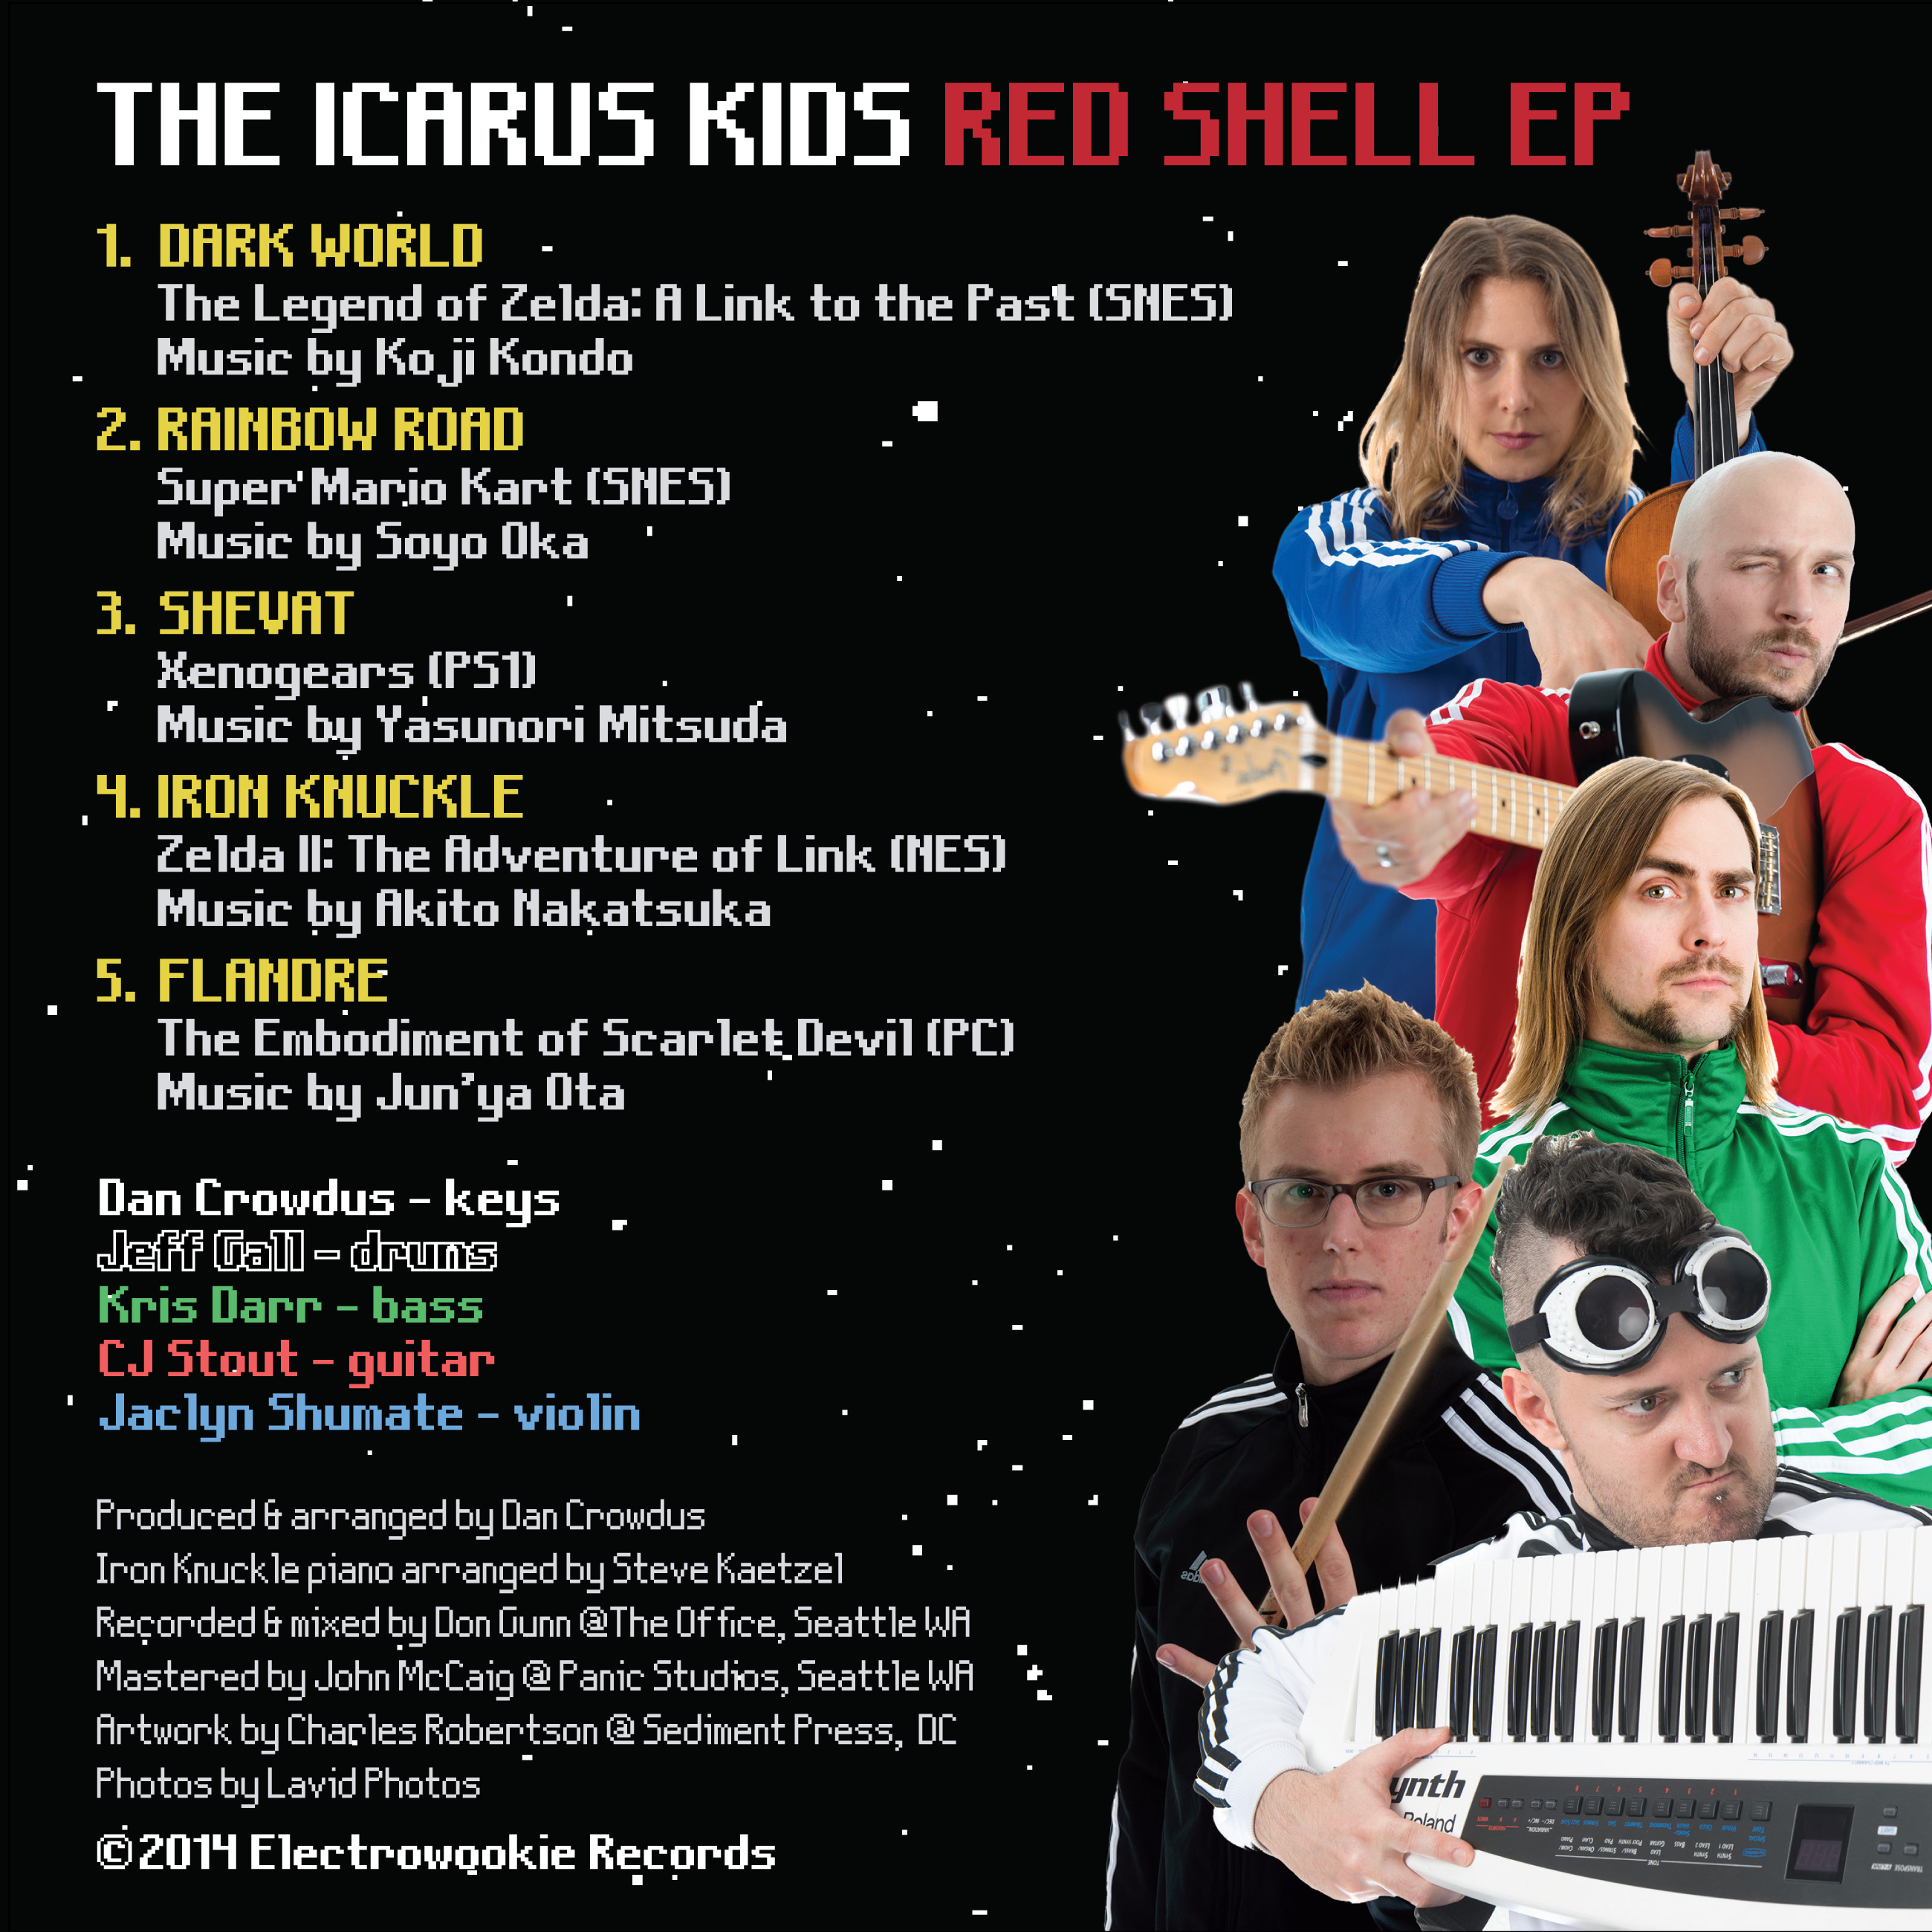 Icarus KidsRed Shell EP - Sediment Press